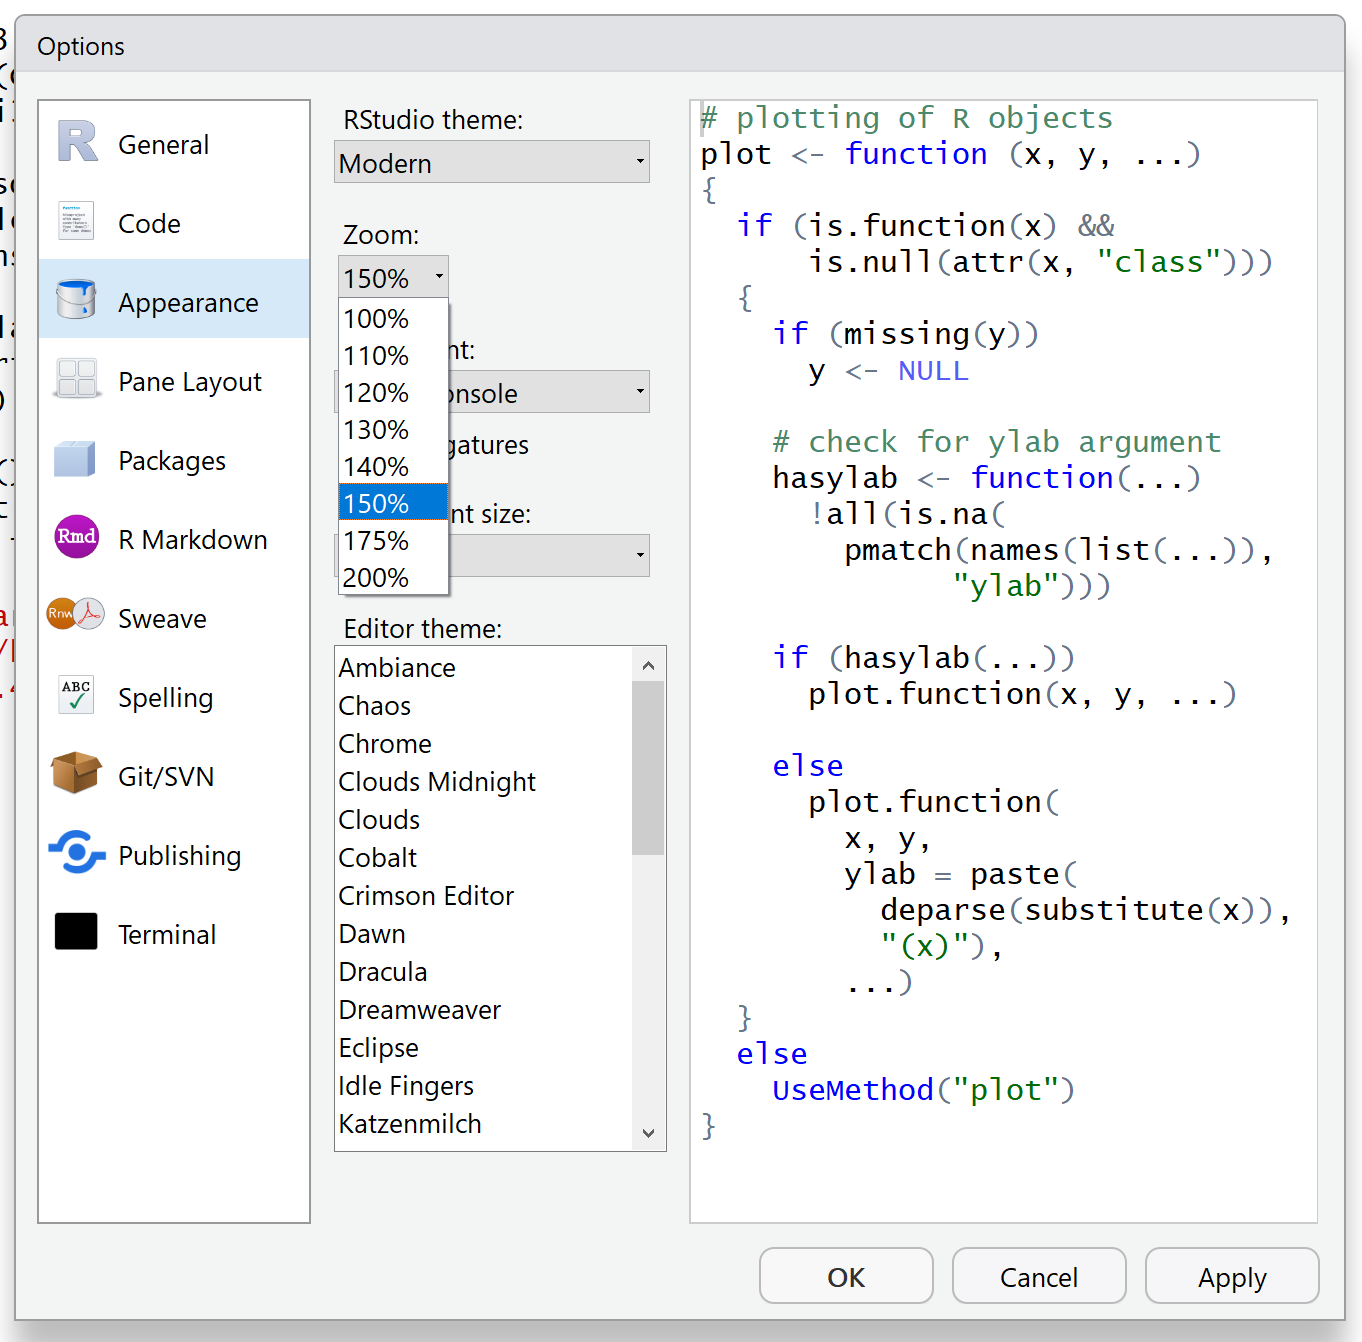 Dramatic screen resolution issue - see screen snip - RStudio